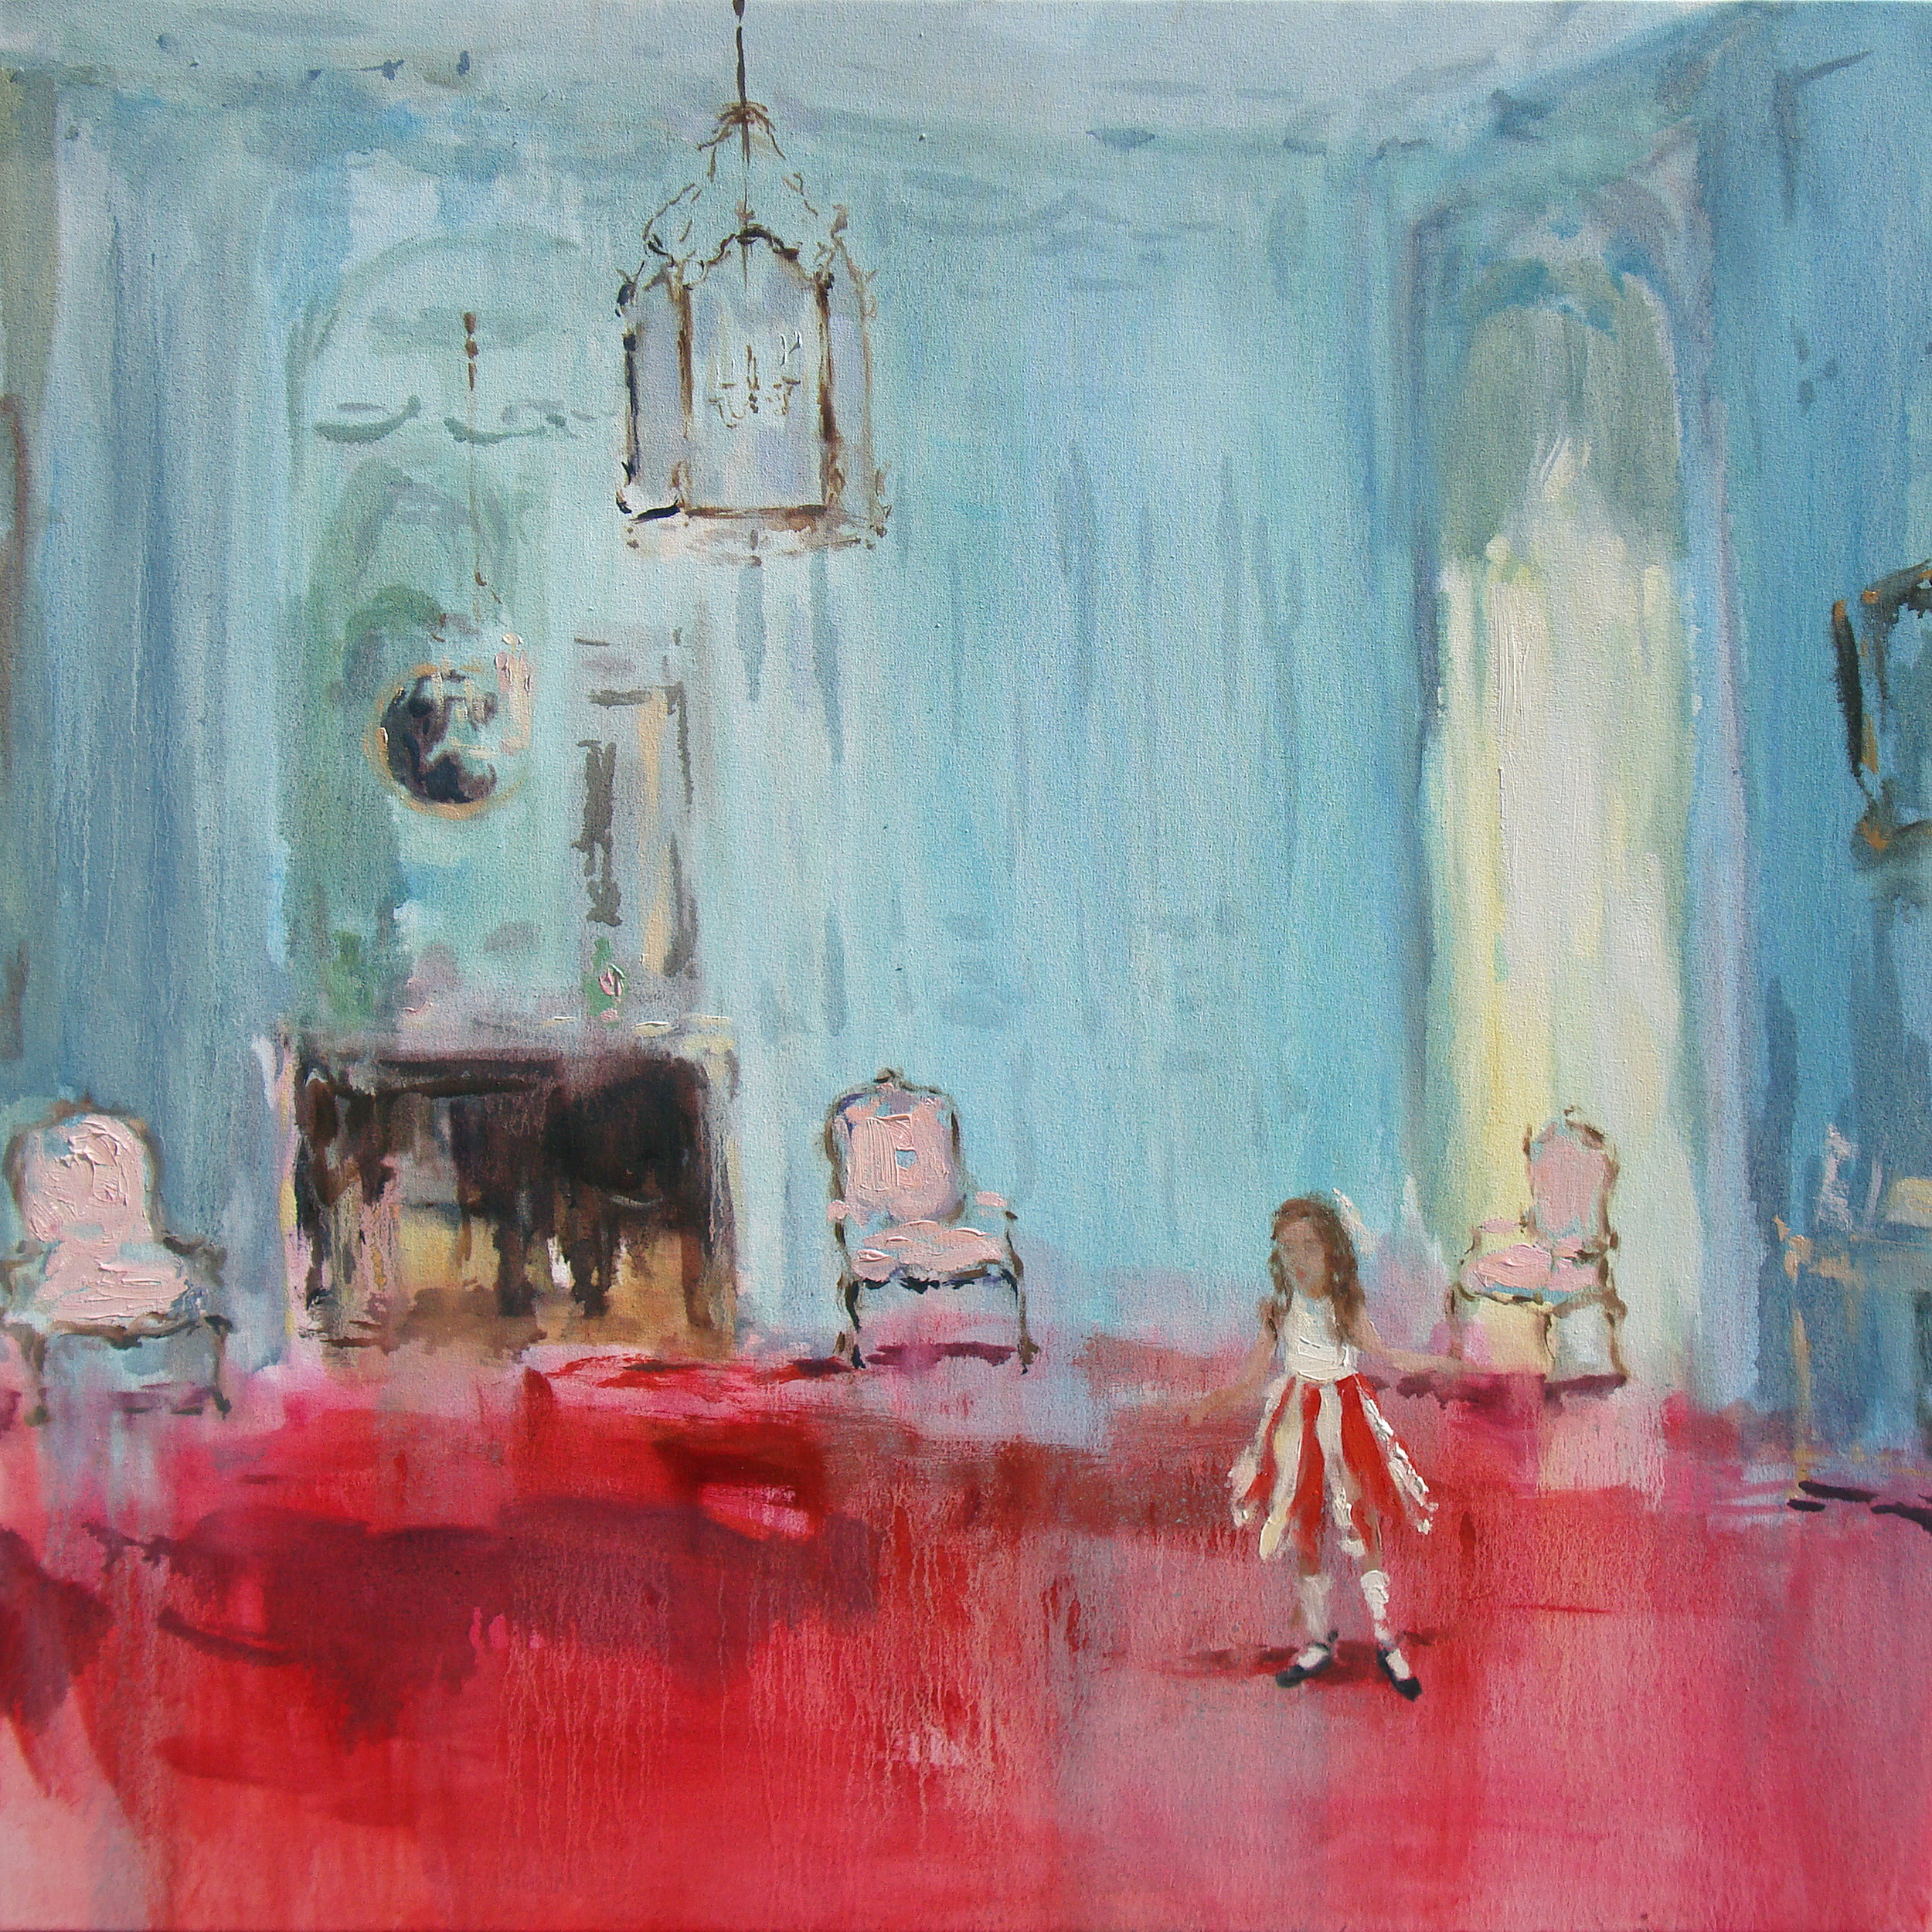 Vintage Suite (it was meant to be) 42 x 32 in. oil on canvas 2011